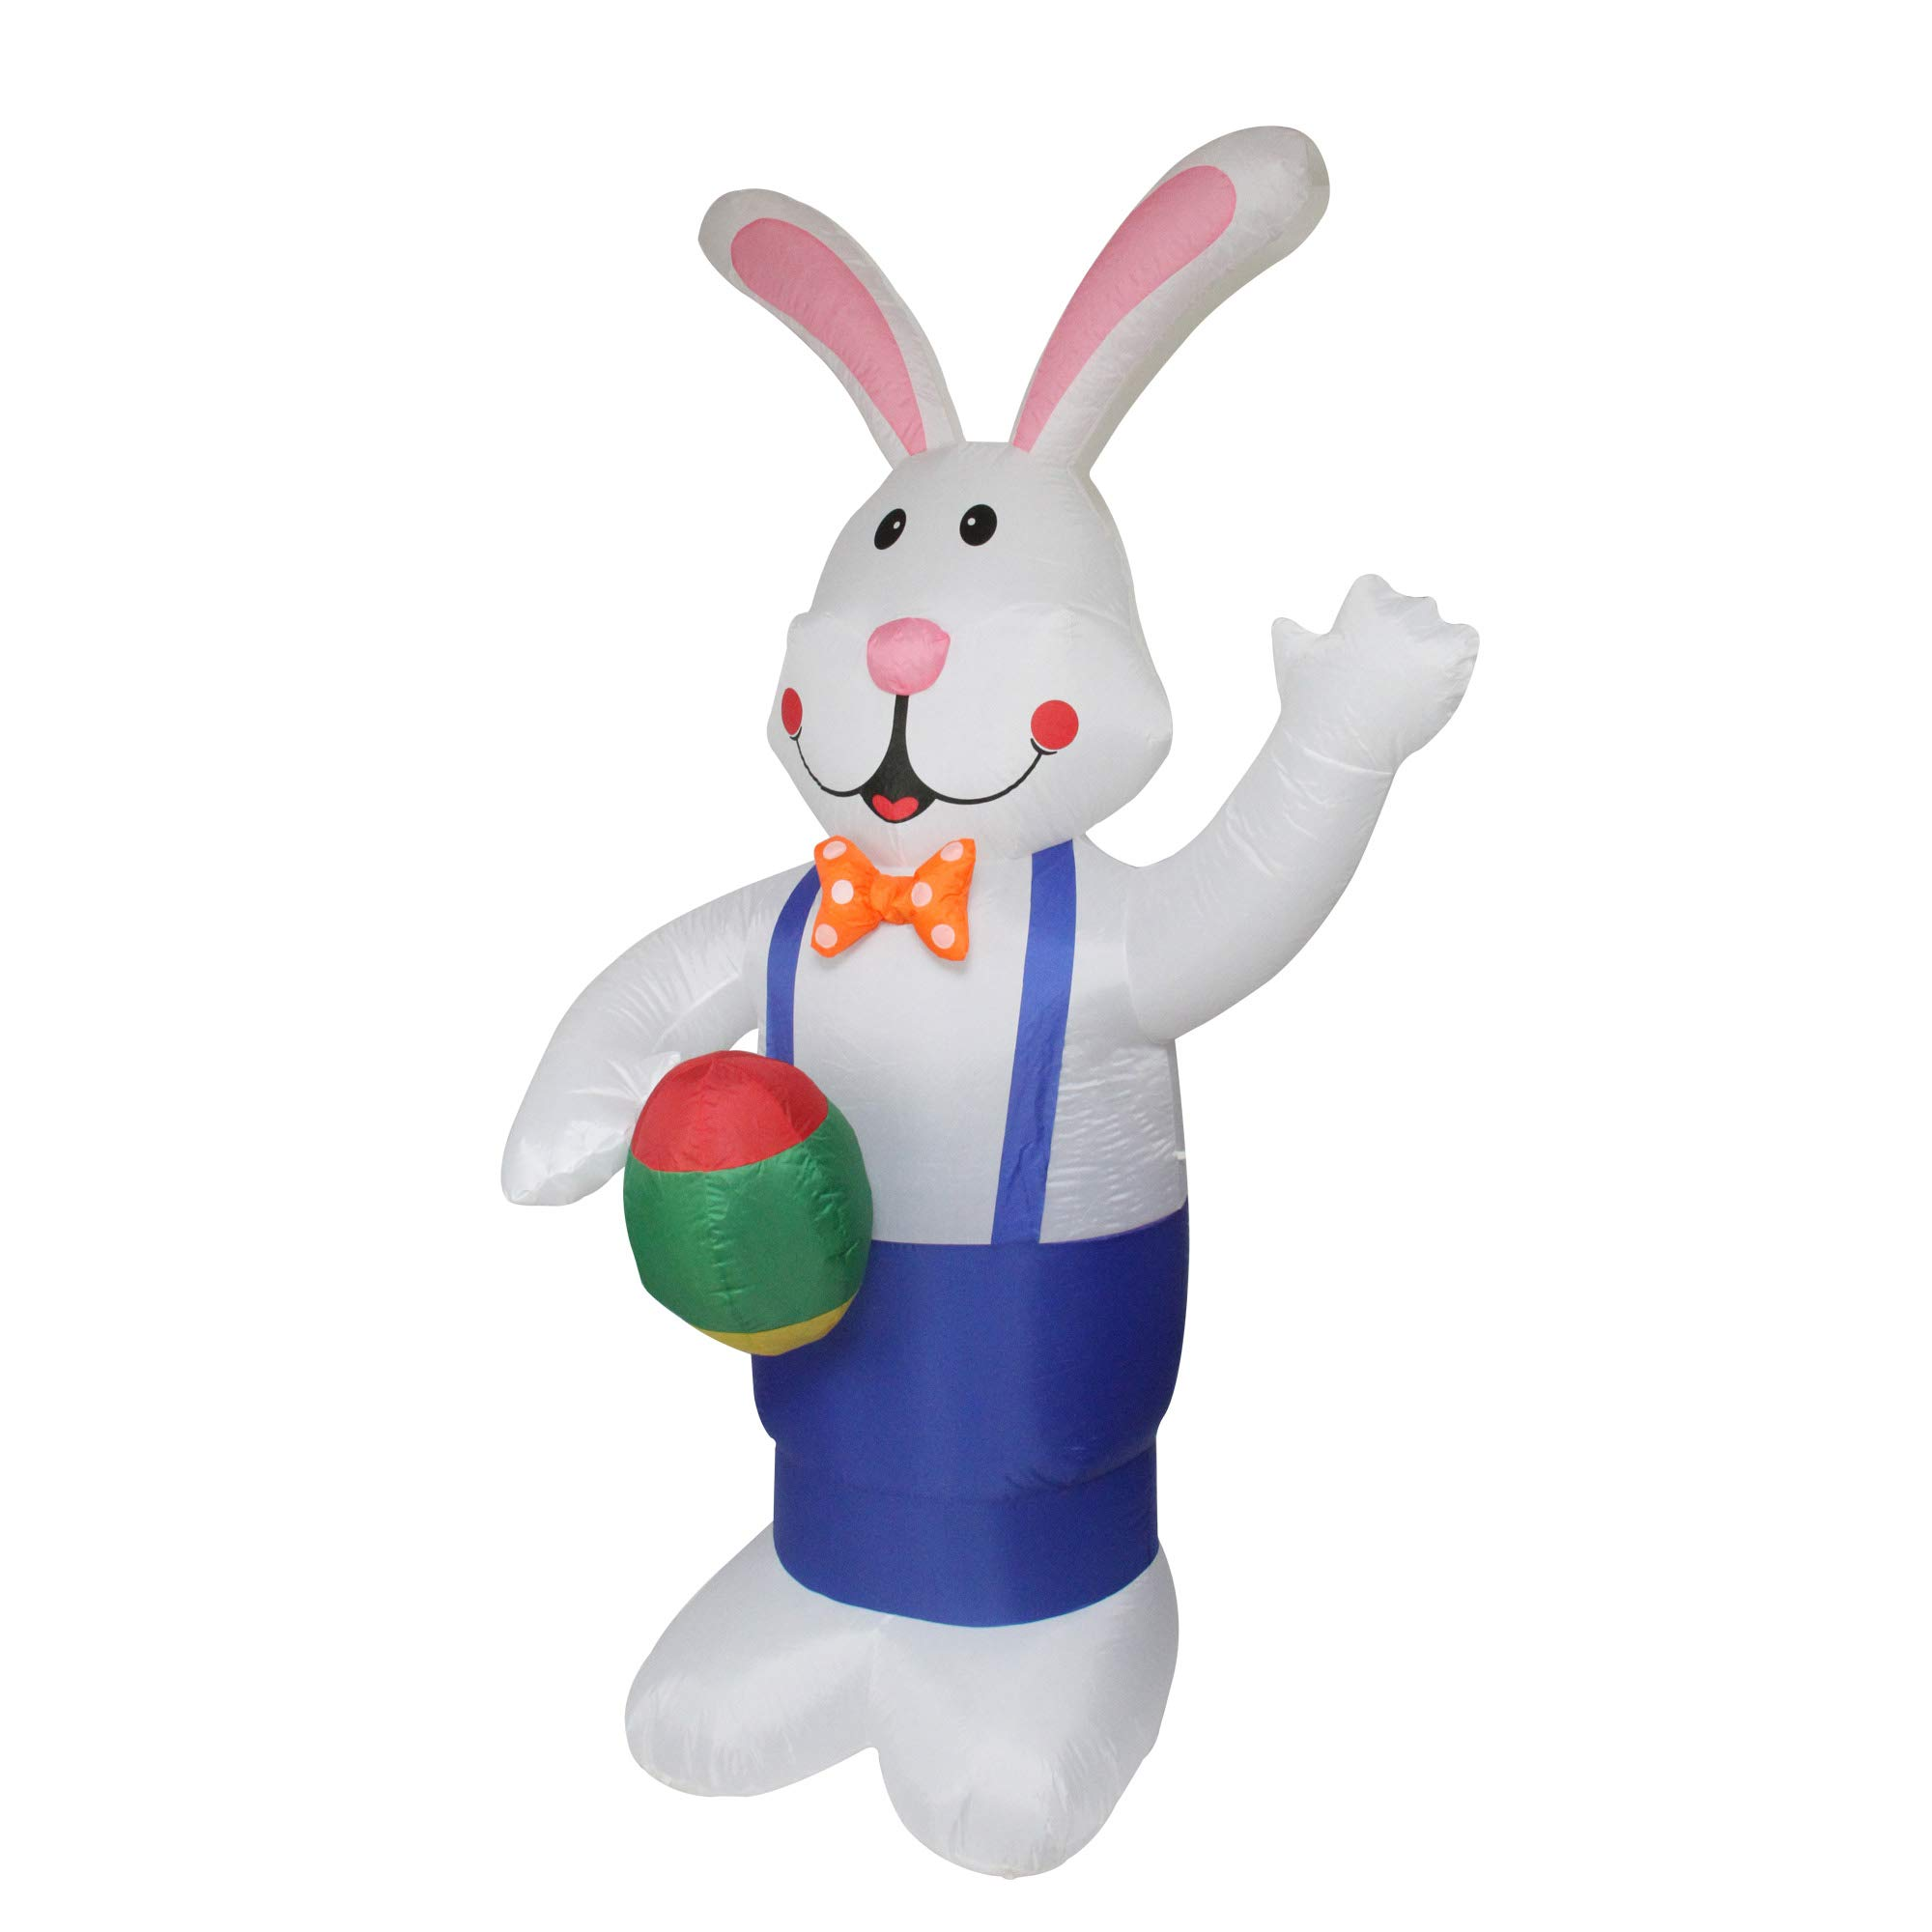 Northlight 7' Inflatable Lighted Standing Easter Bunny with Eggs Outdoor Decoration